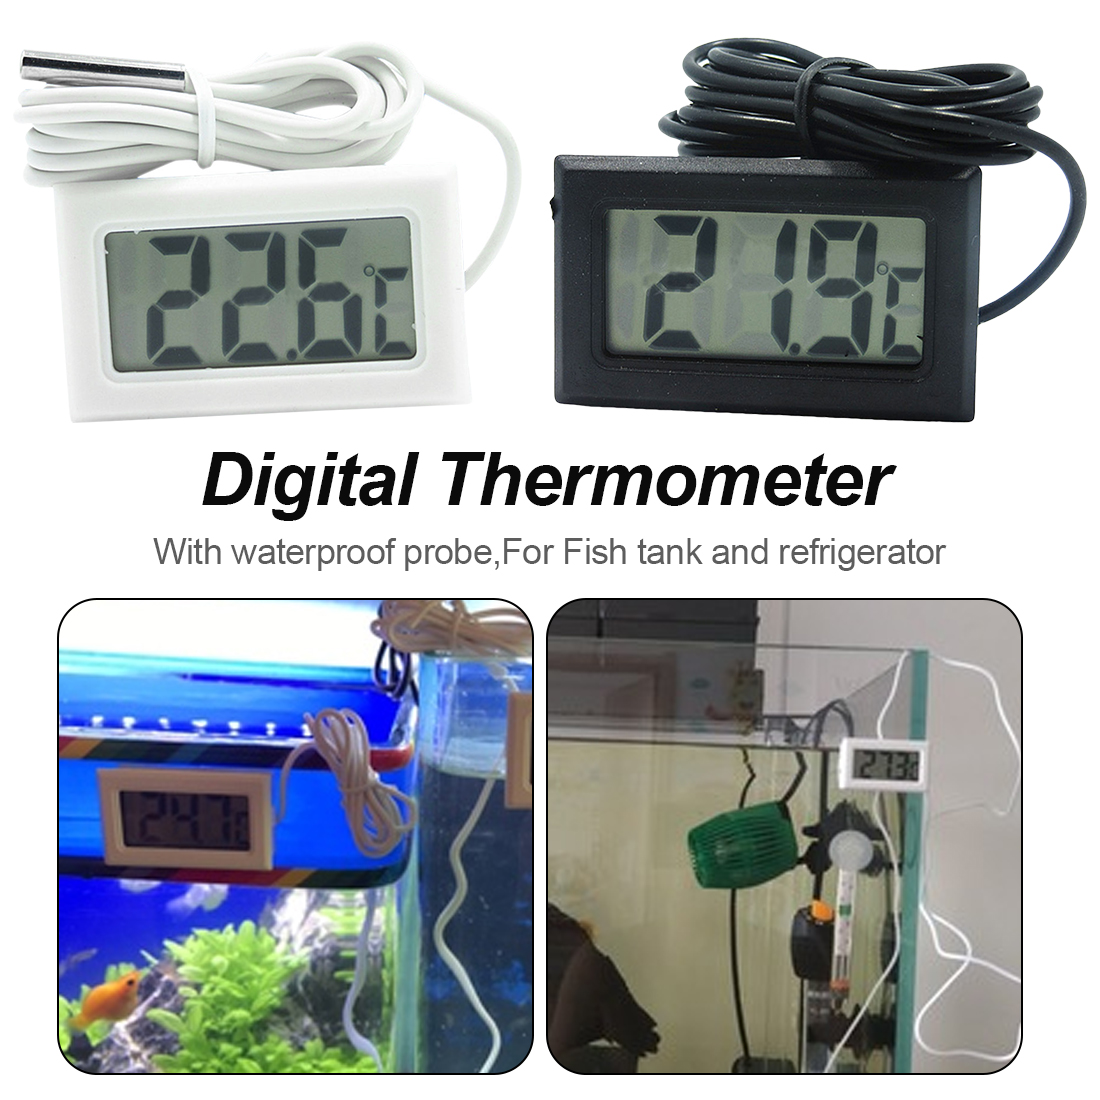 Temperature Sensor -<font><b>50</b></font>~<font><b>110C</b></font> Mini LCD Display Digital Thermometer Meter Aquarium refrigerator water temperature gauge image